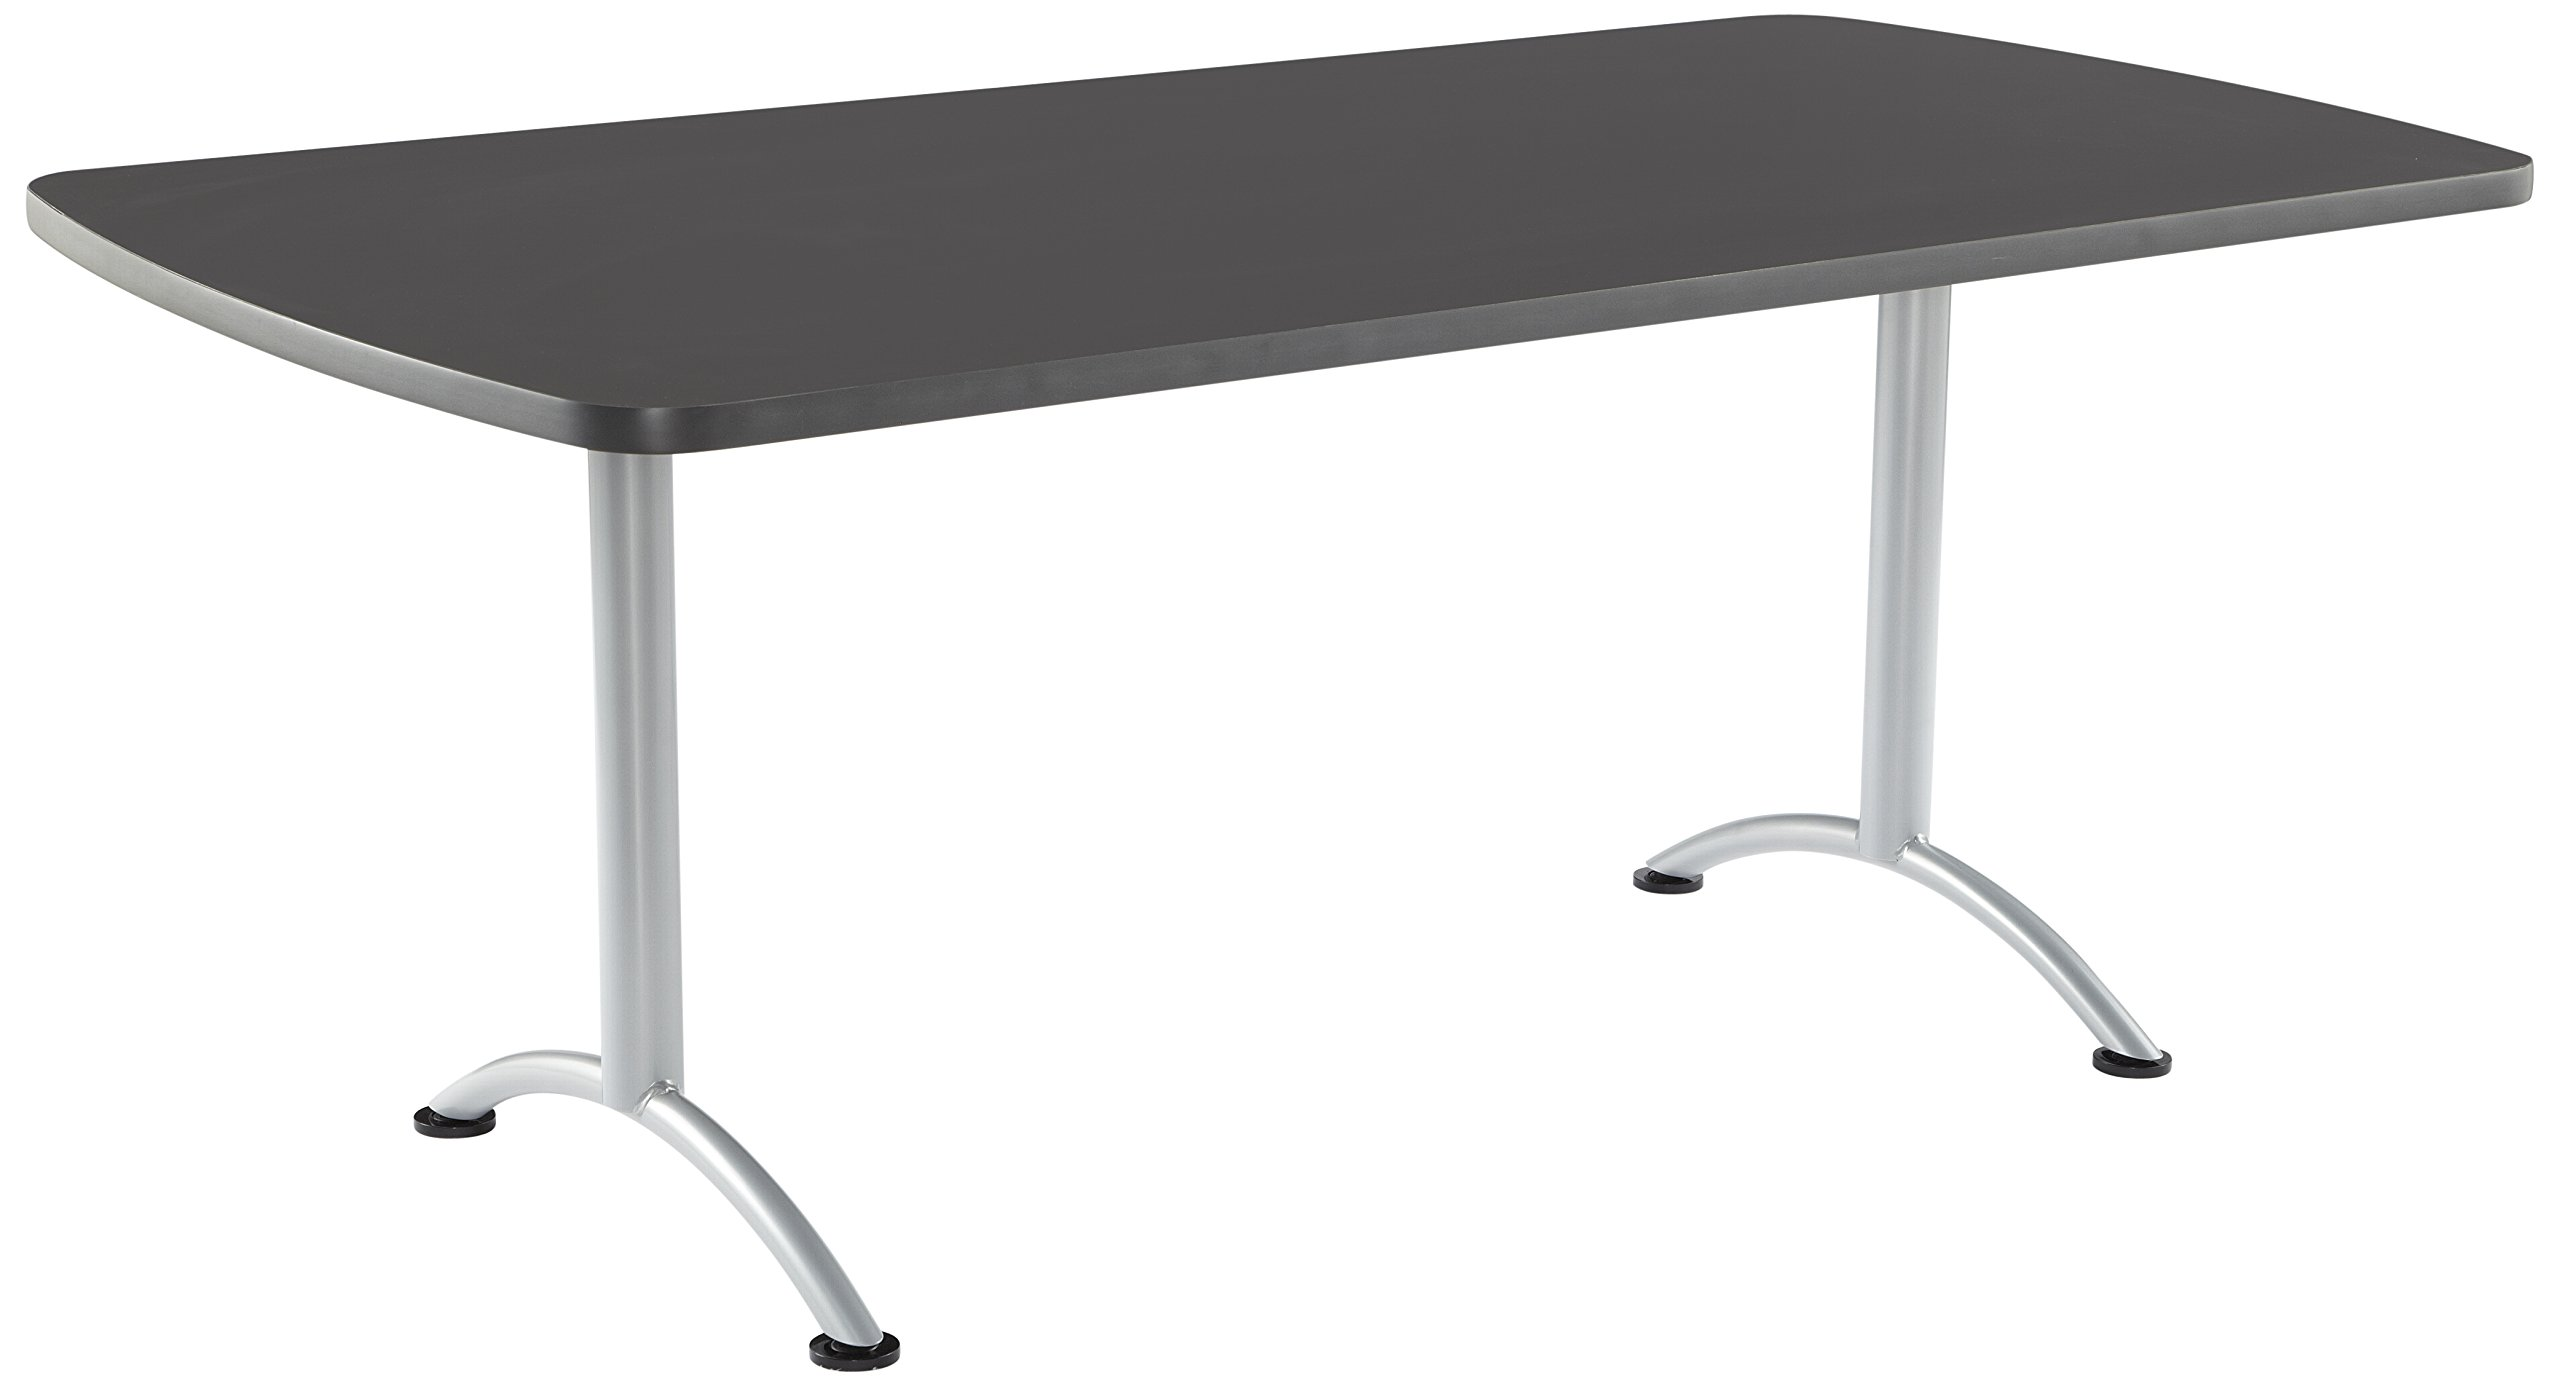 Iceberg ICE69227 ARC 6-foot Rectangular Conference Table, 36'' x 72'', Graphite/Silver Leg